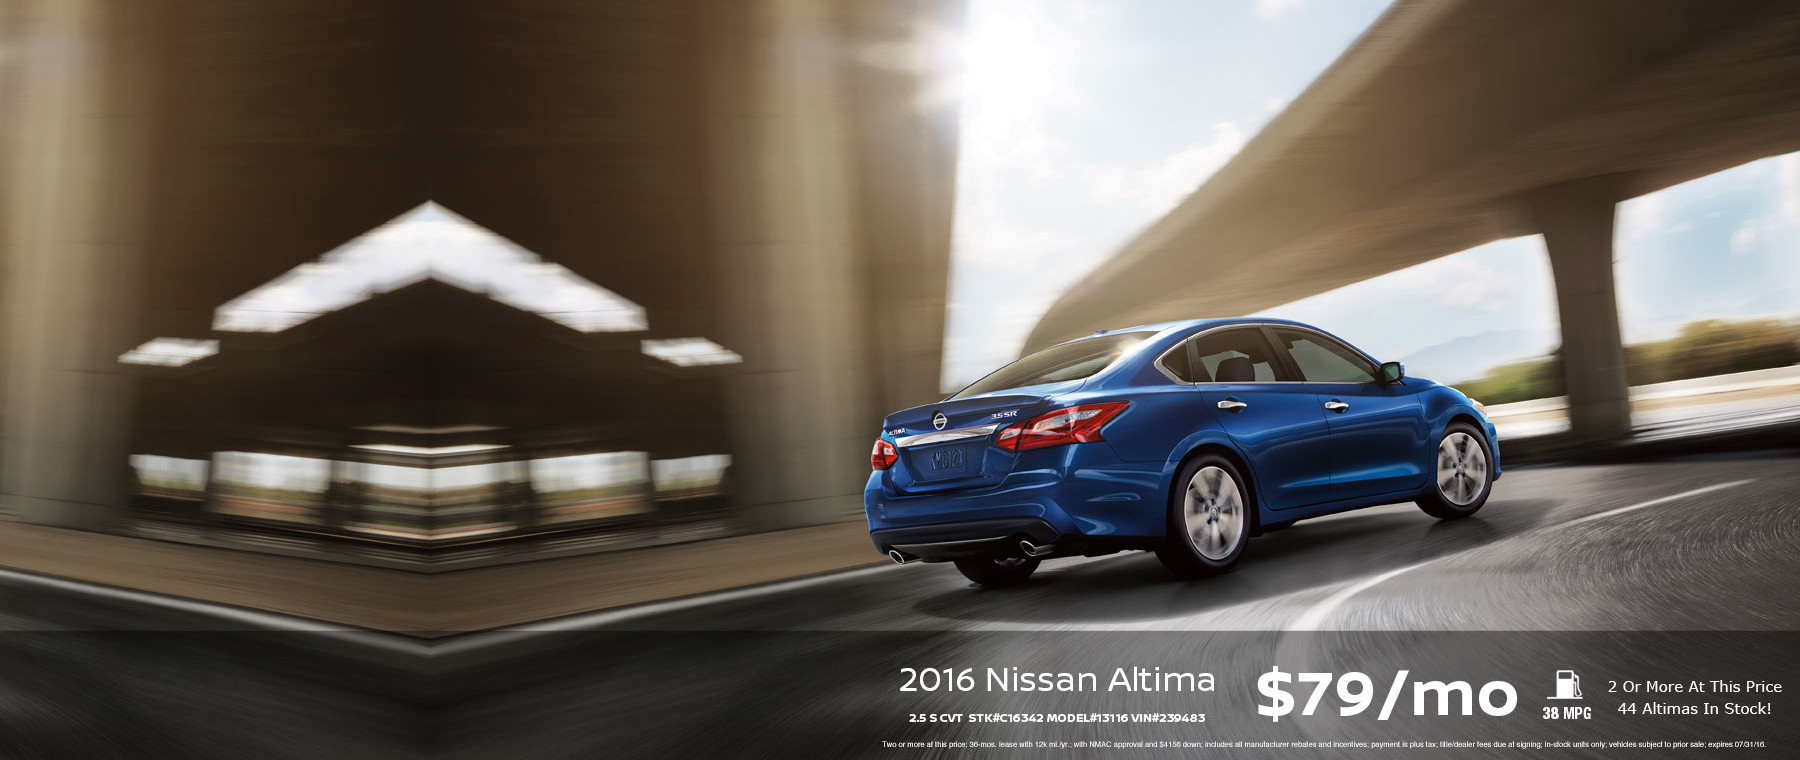 Andy Mohr Nissan Indianapolis 2016 Altima